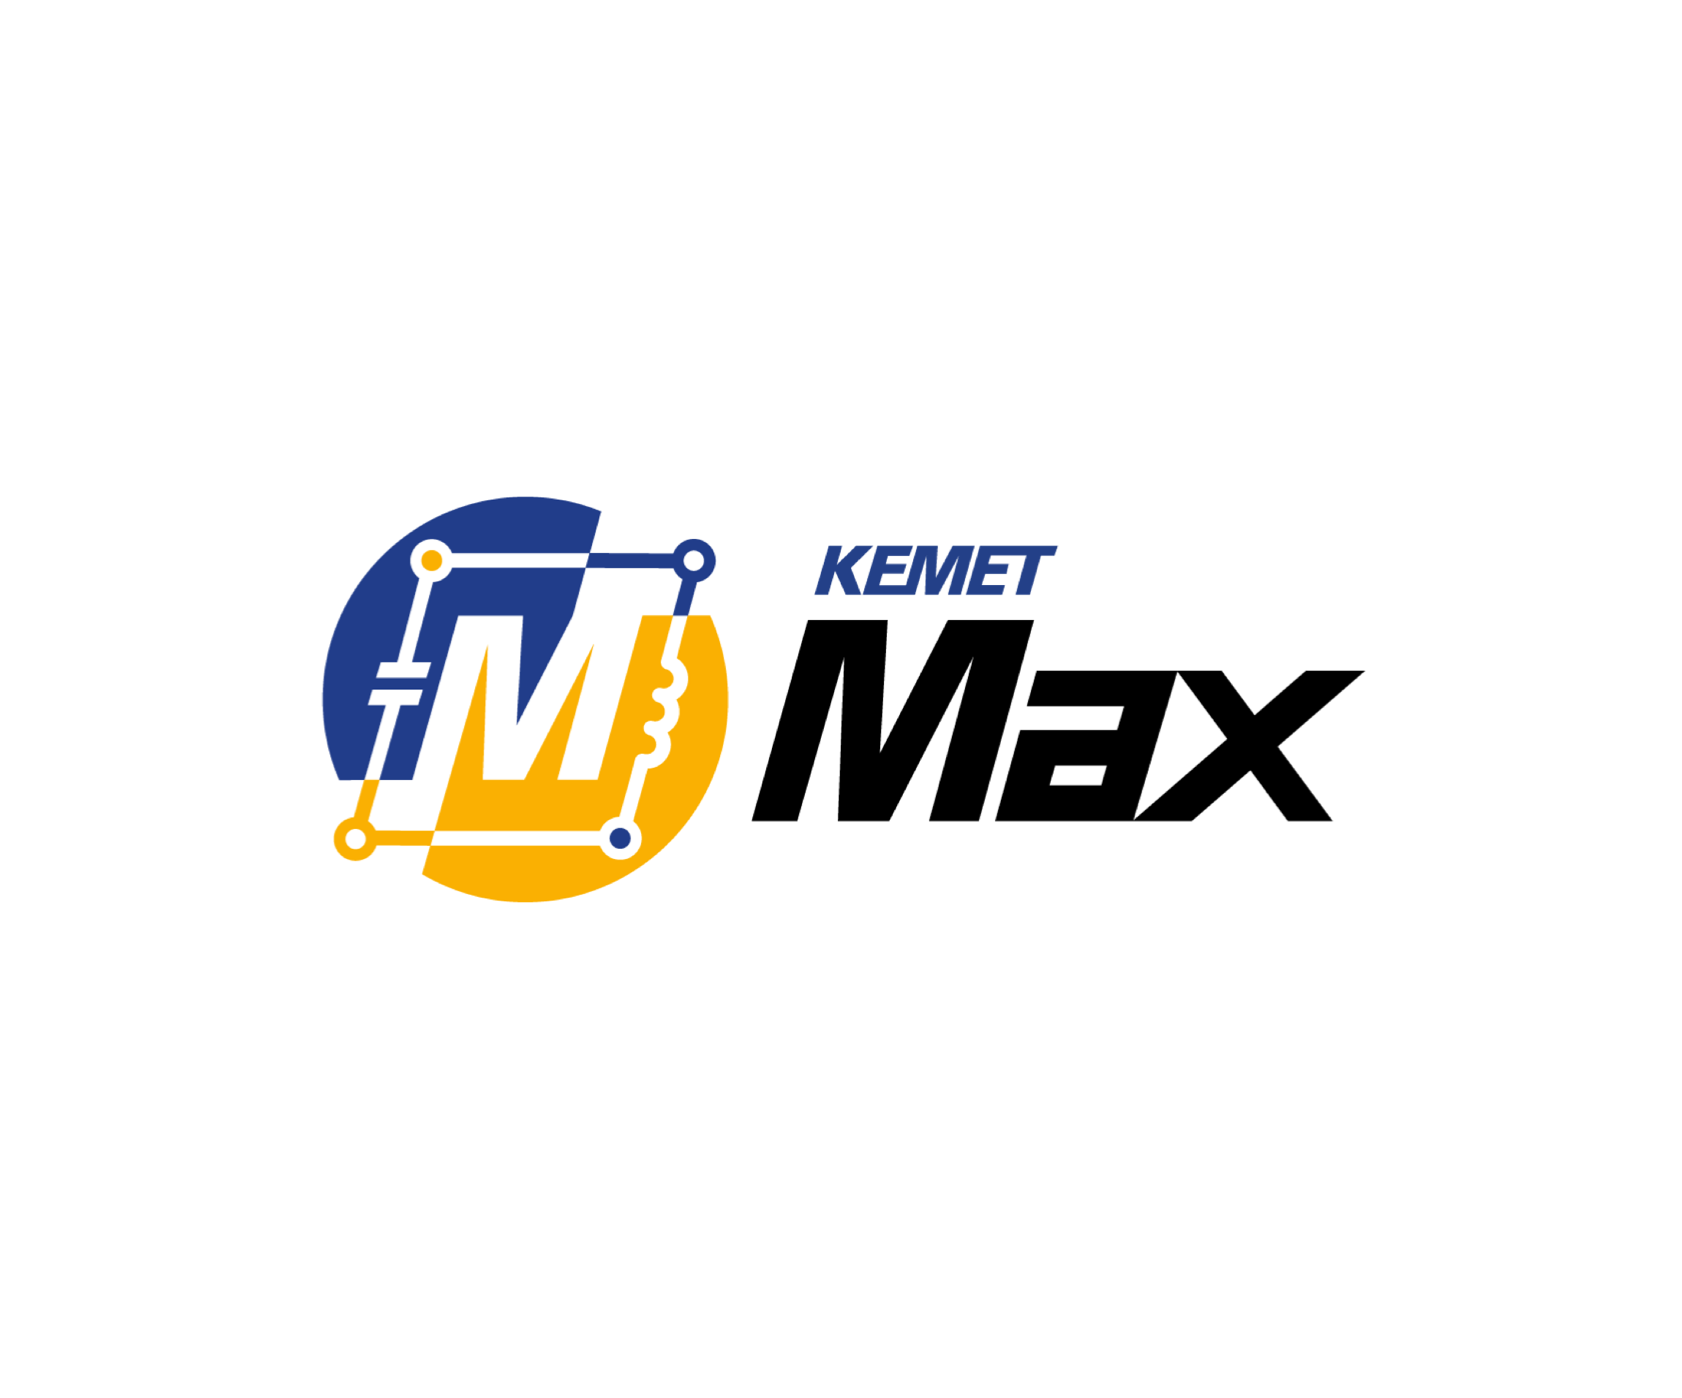 The logo is blue and yellow following brand colors. Max is bold and black in a futuristic font.